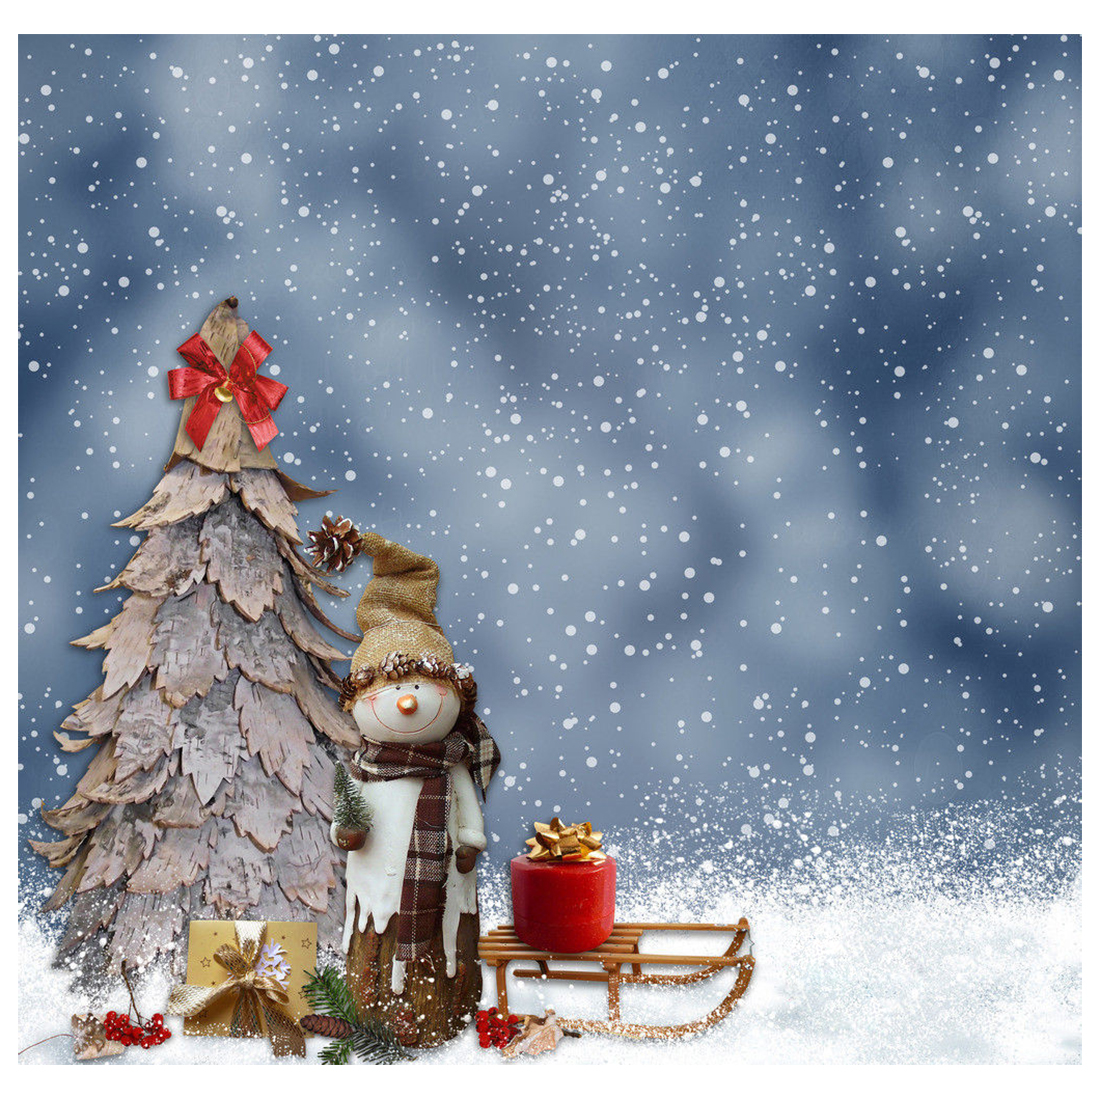 Thin Vinyl Christmas Snow Photography Backdrop Prop Photo Background 5x7ft thin vinyl vintage book shelf backdrop book case library book store printed fabric photography background f 2686